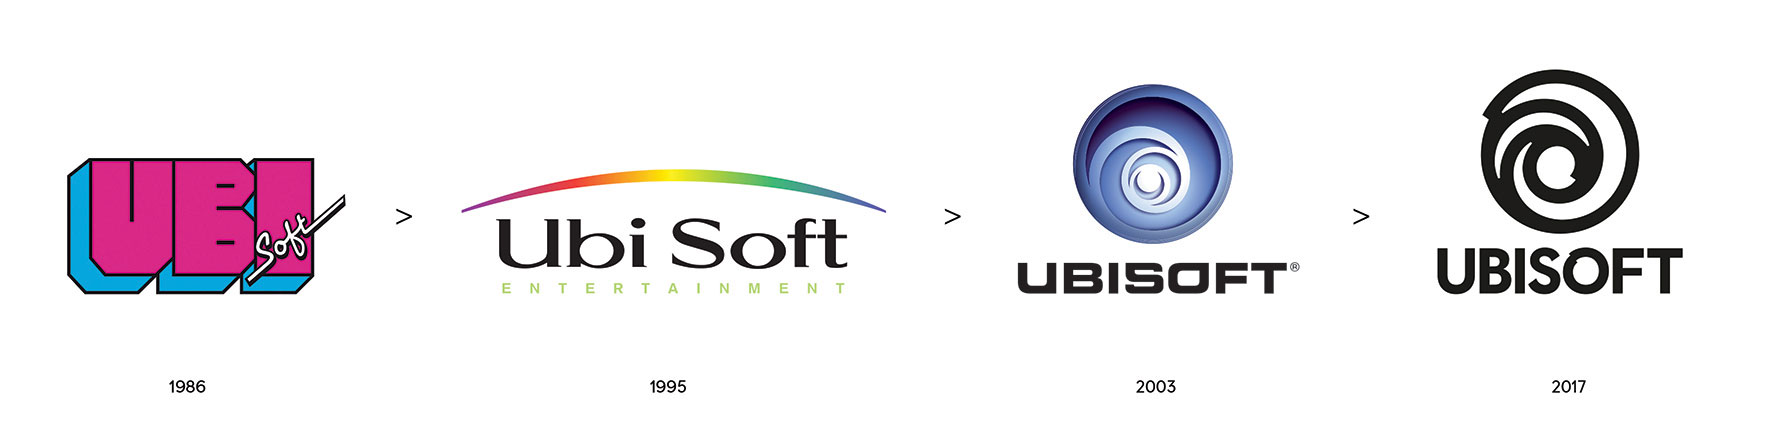 New Ubisoft Logo Marks New Era With Focus on Player-centric Approach